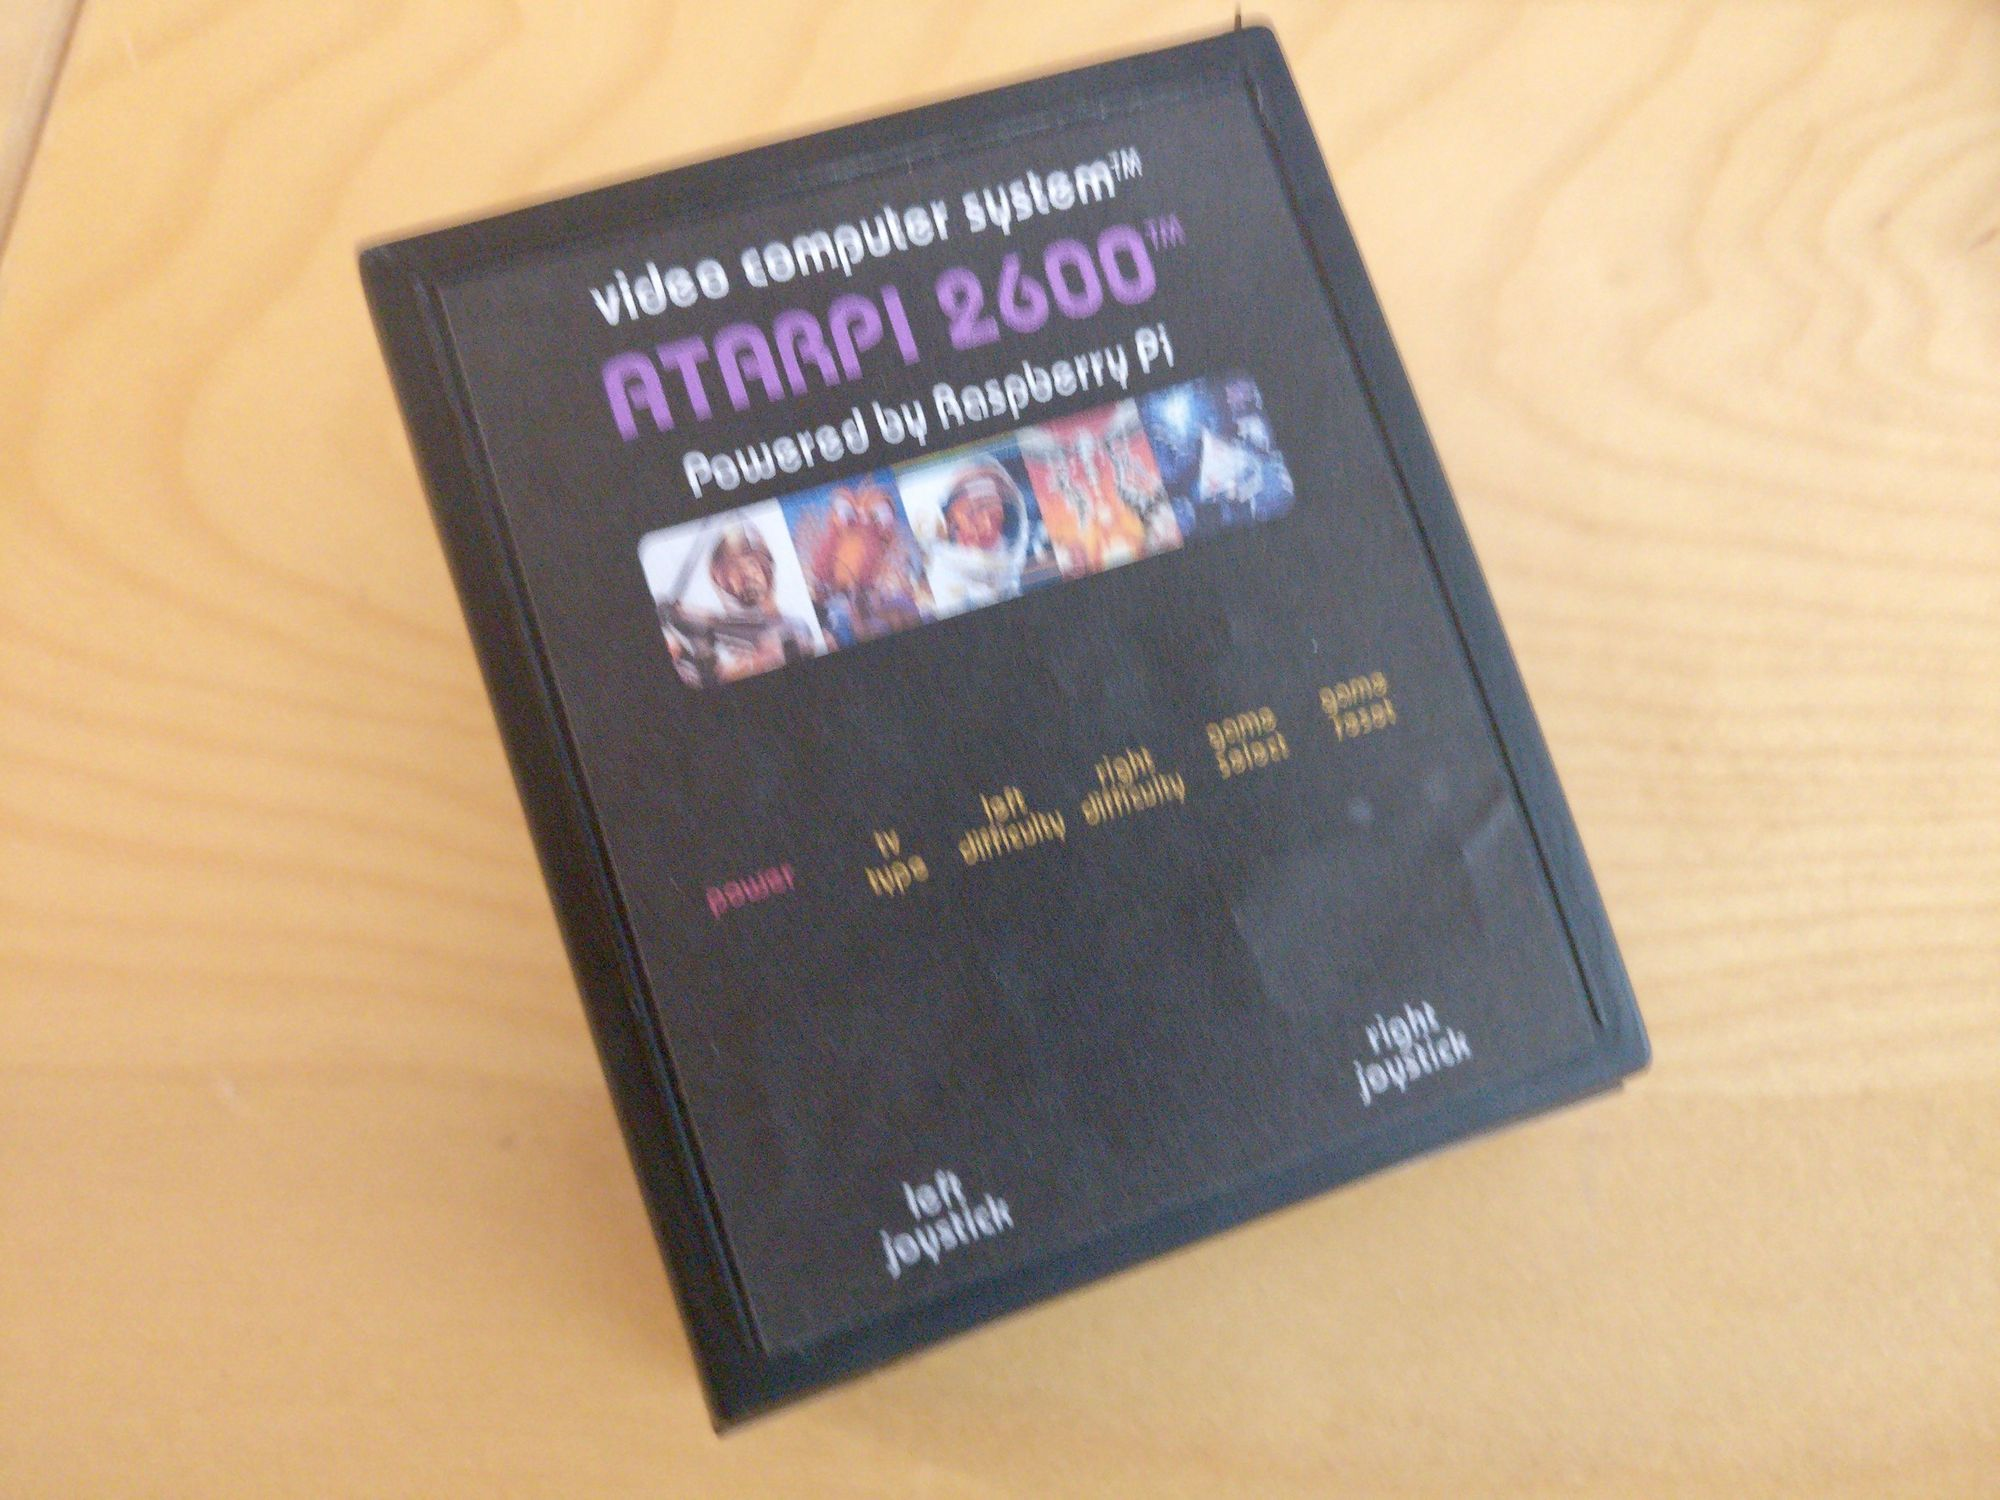 An Atari 2600 in a Cartridge